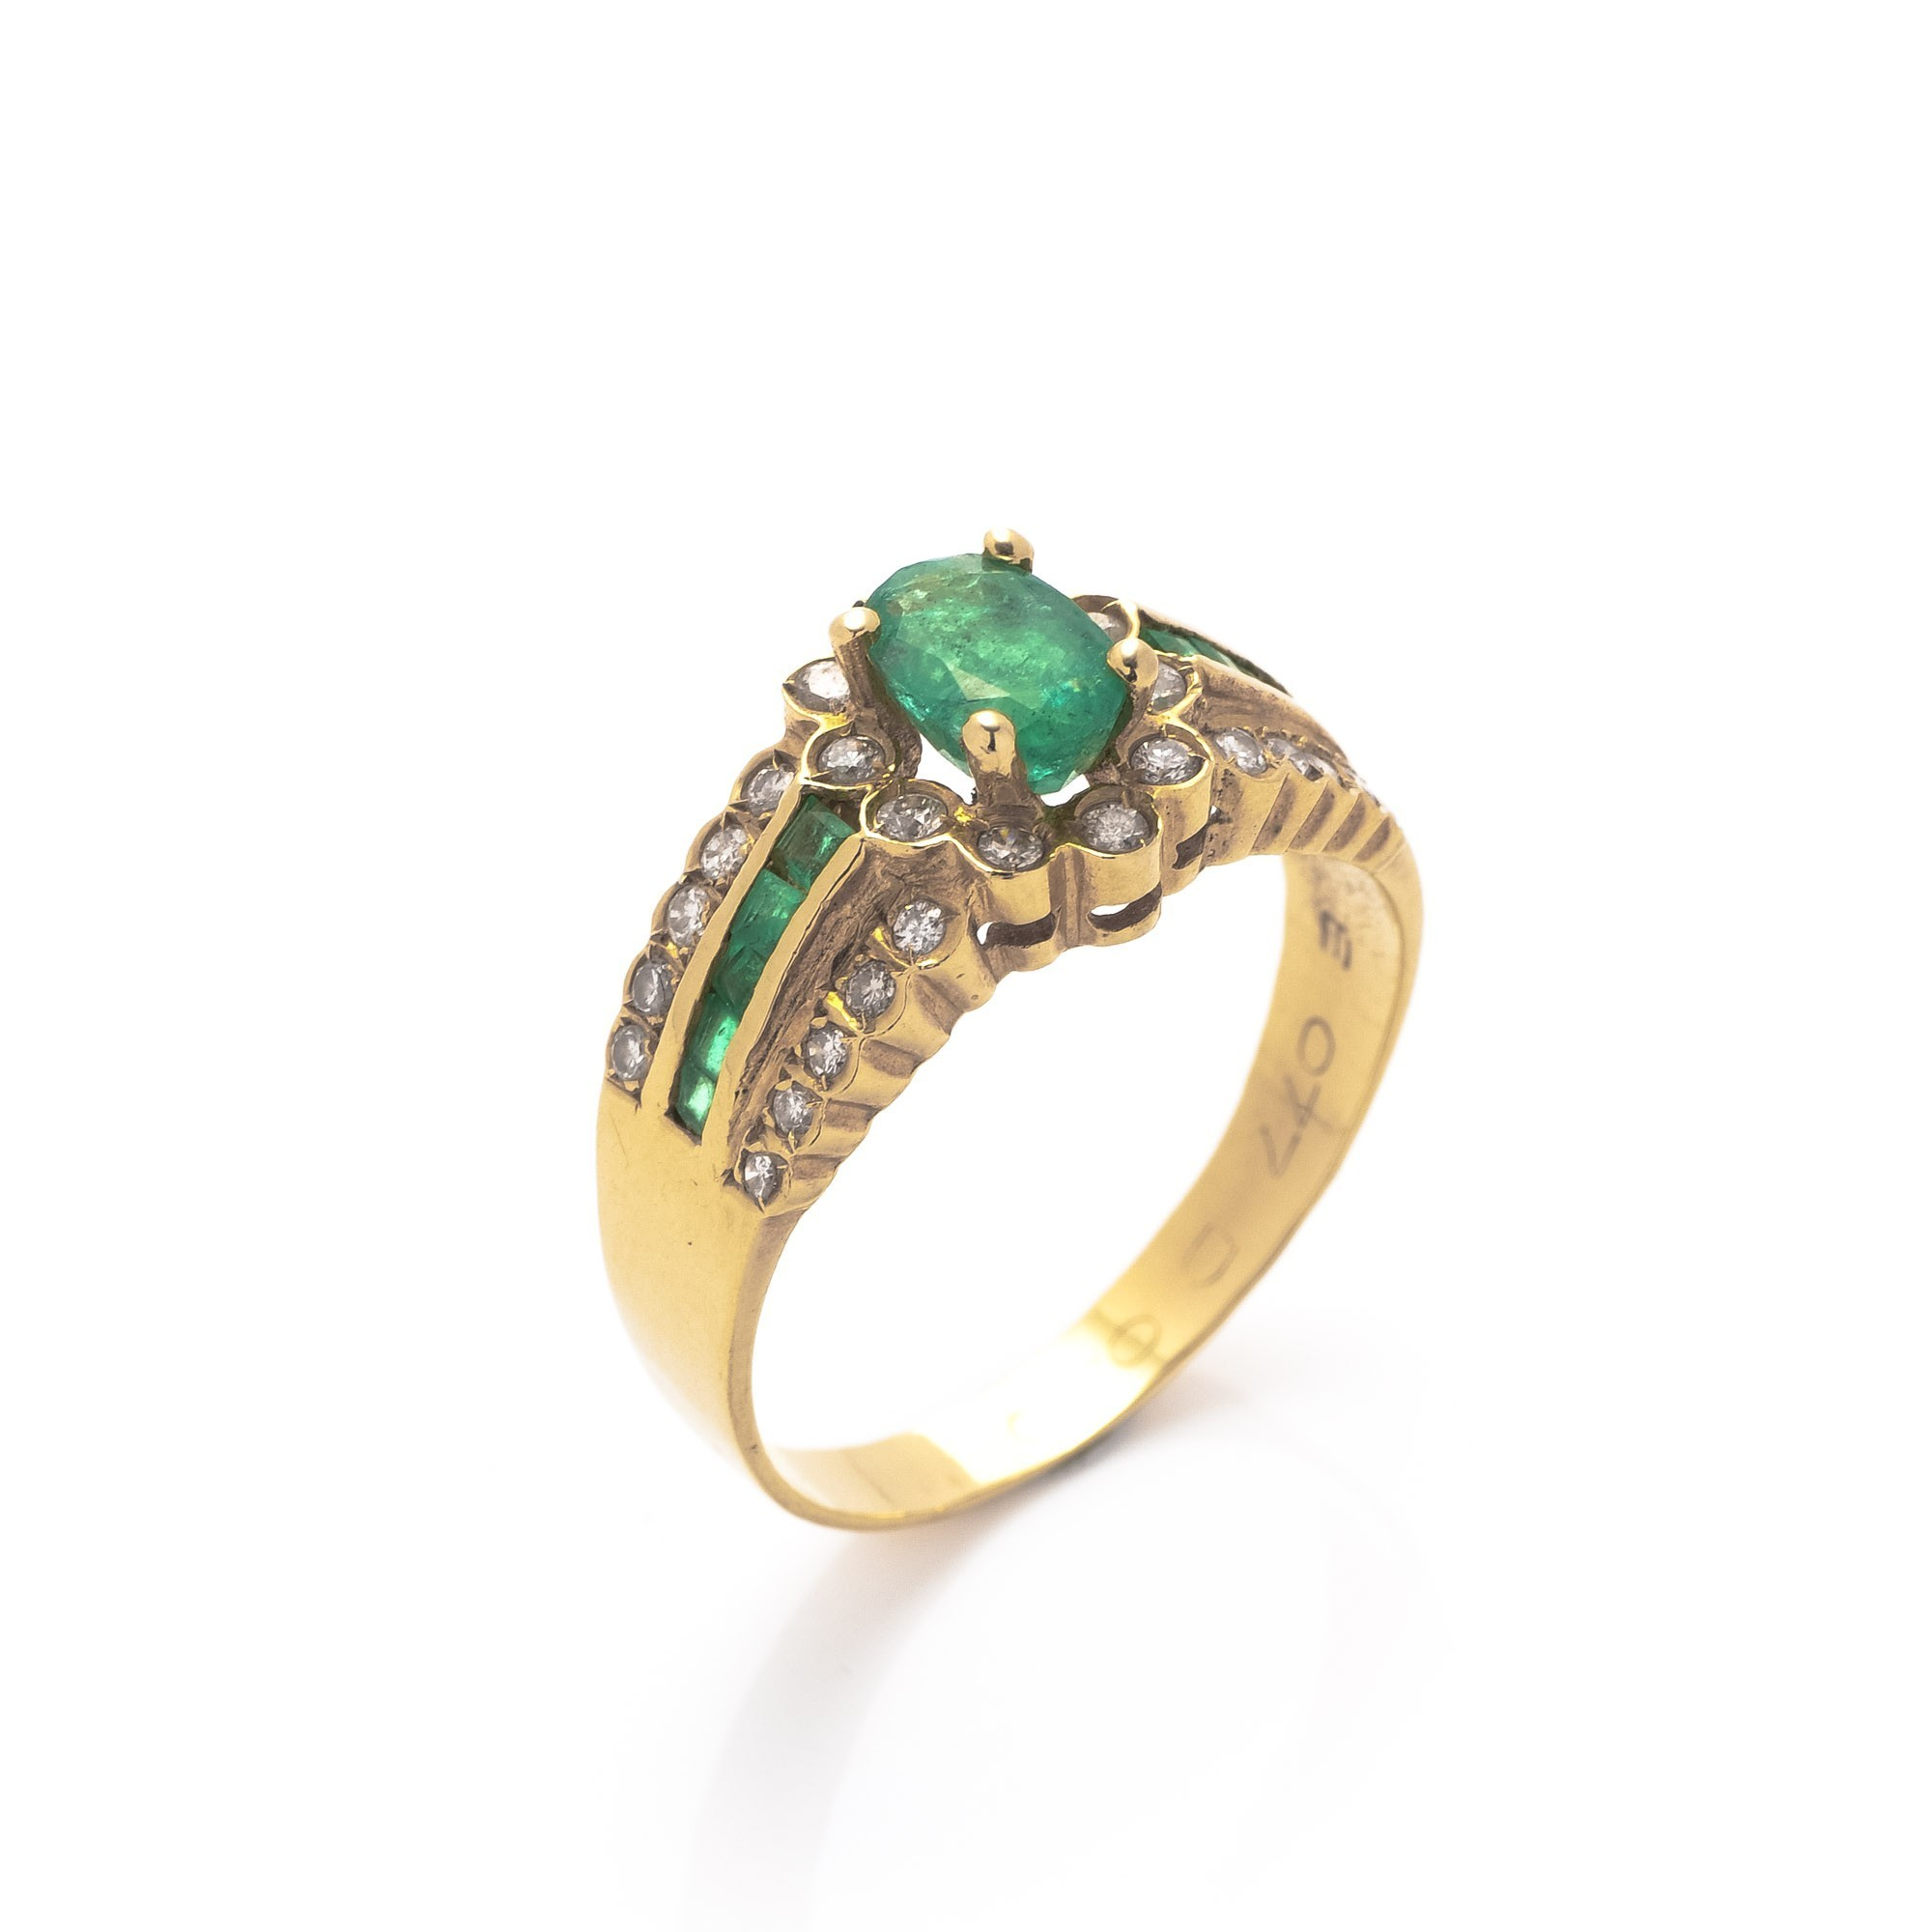 buy gold 18k gold estate jewelry ring at lxr co